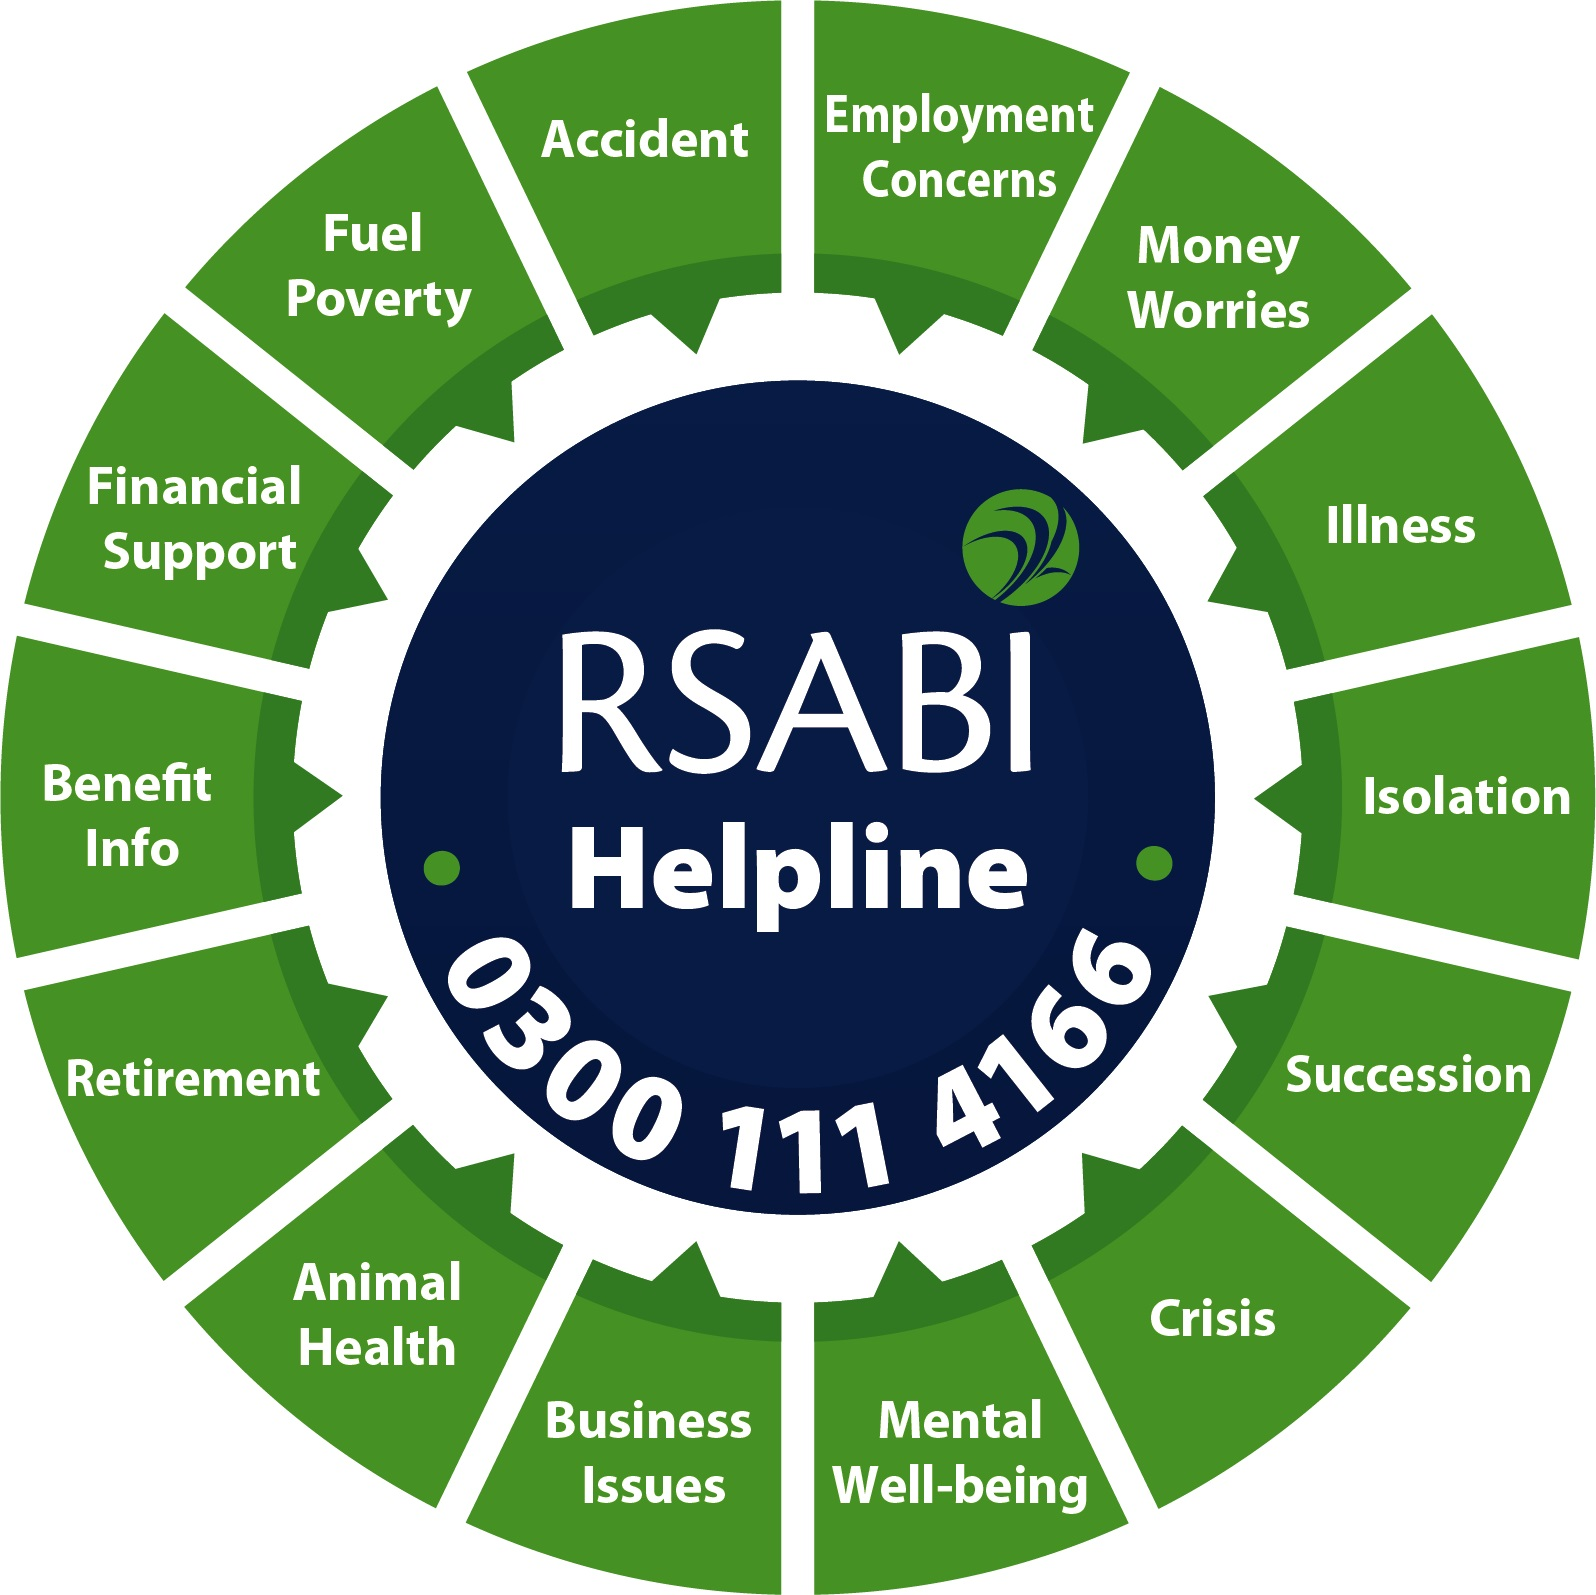 How RSABI can help